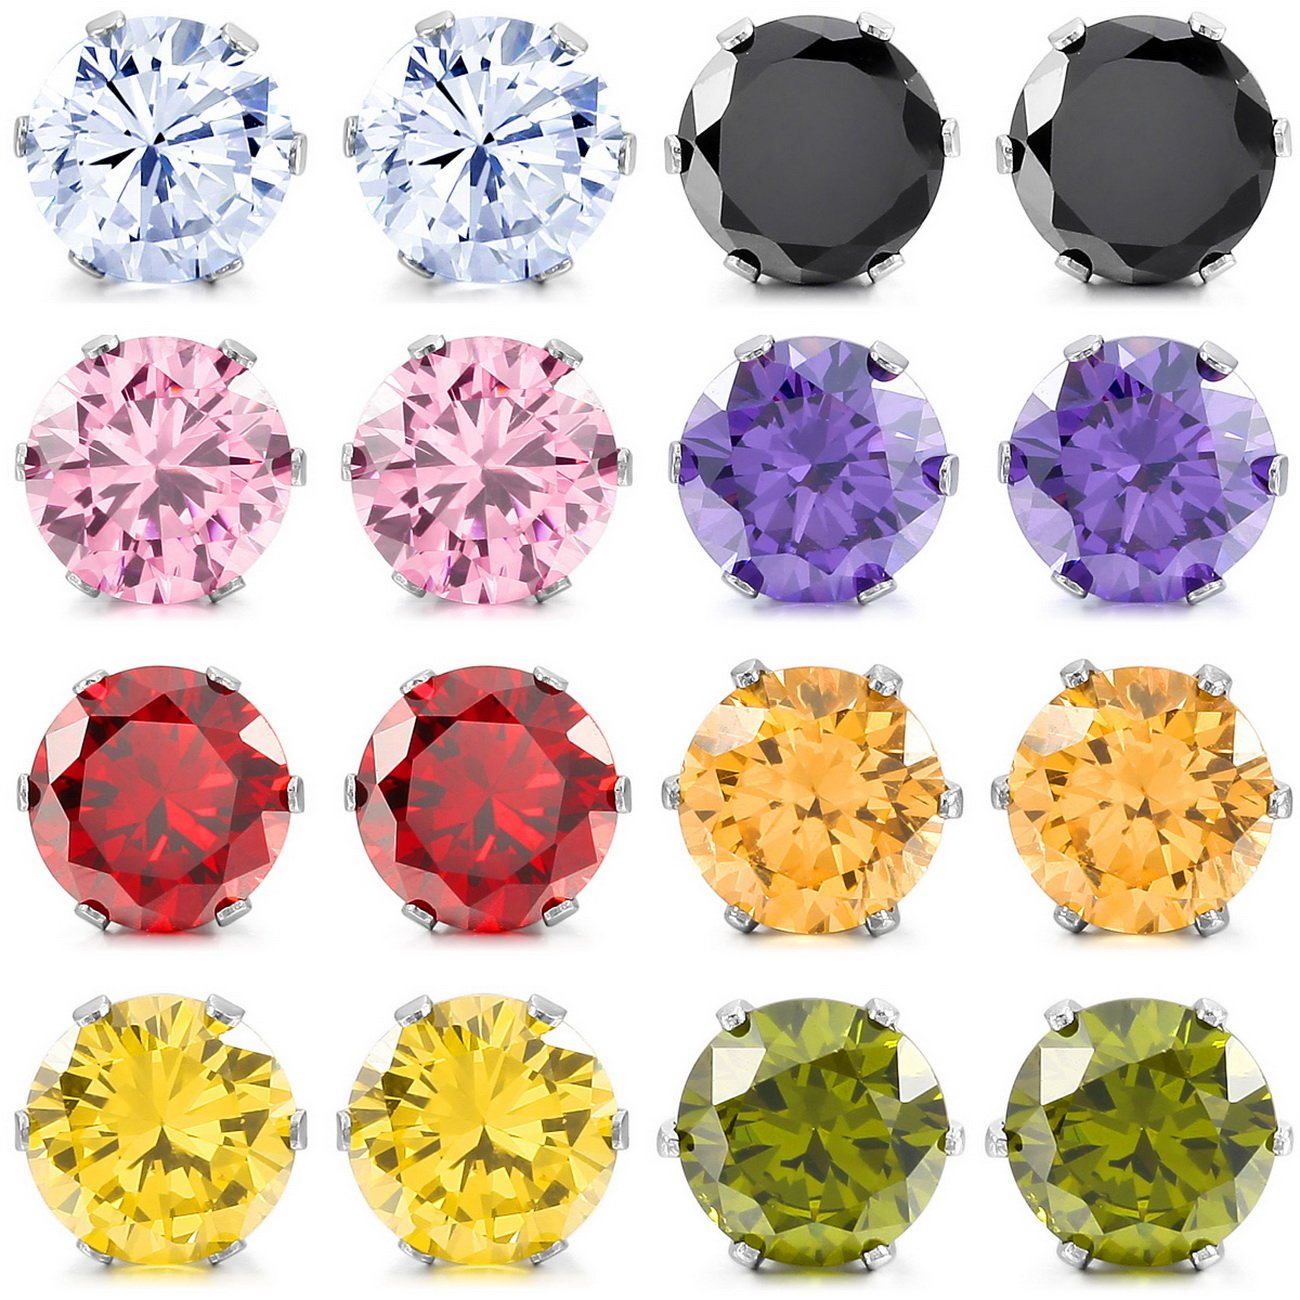 MOWOM Multicolor 3~10 mm 16PCS Stainless Steel Stud Earrings CZ Round Square Royal King Crown Set (8 Pairs) ca5060030